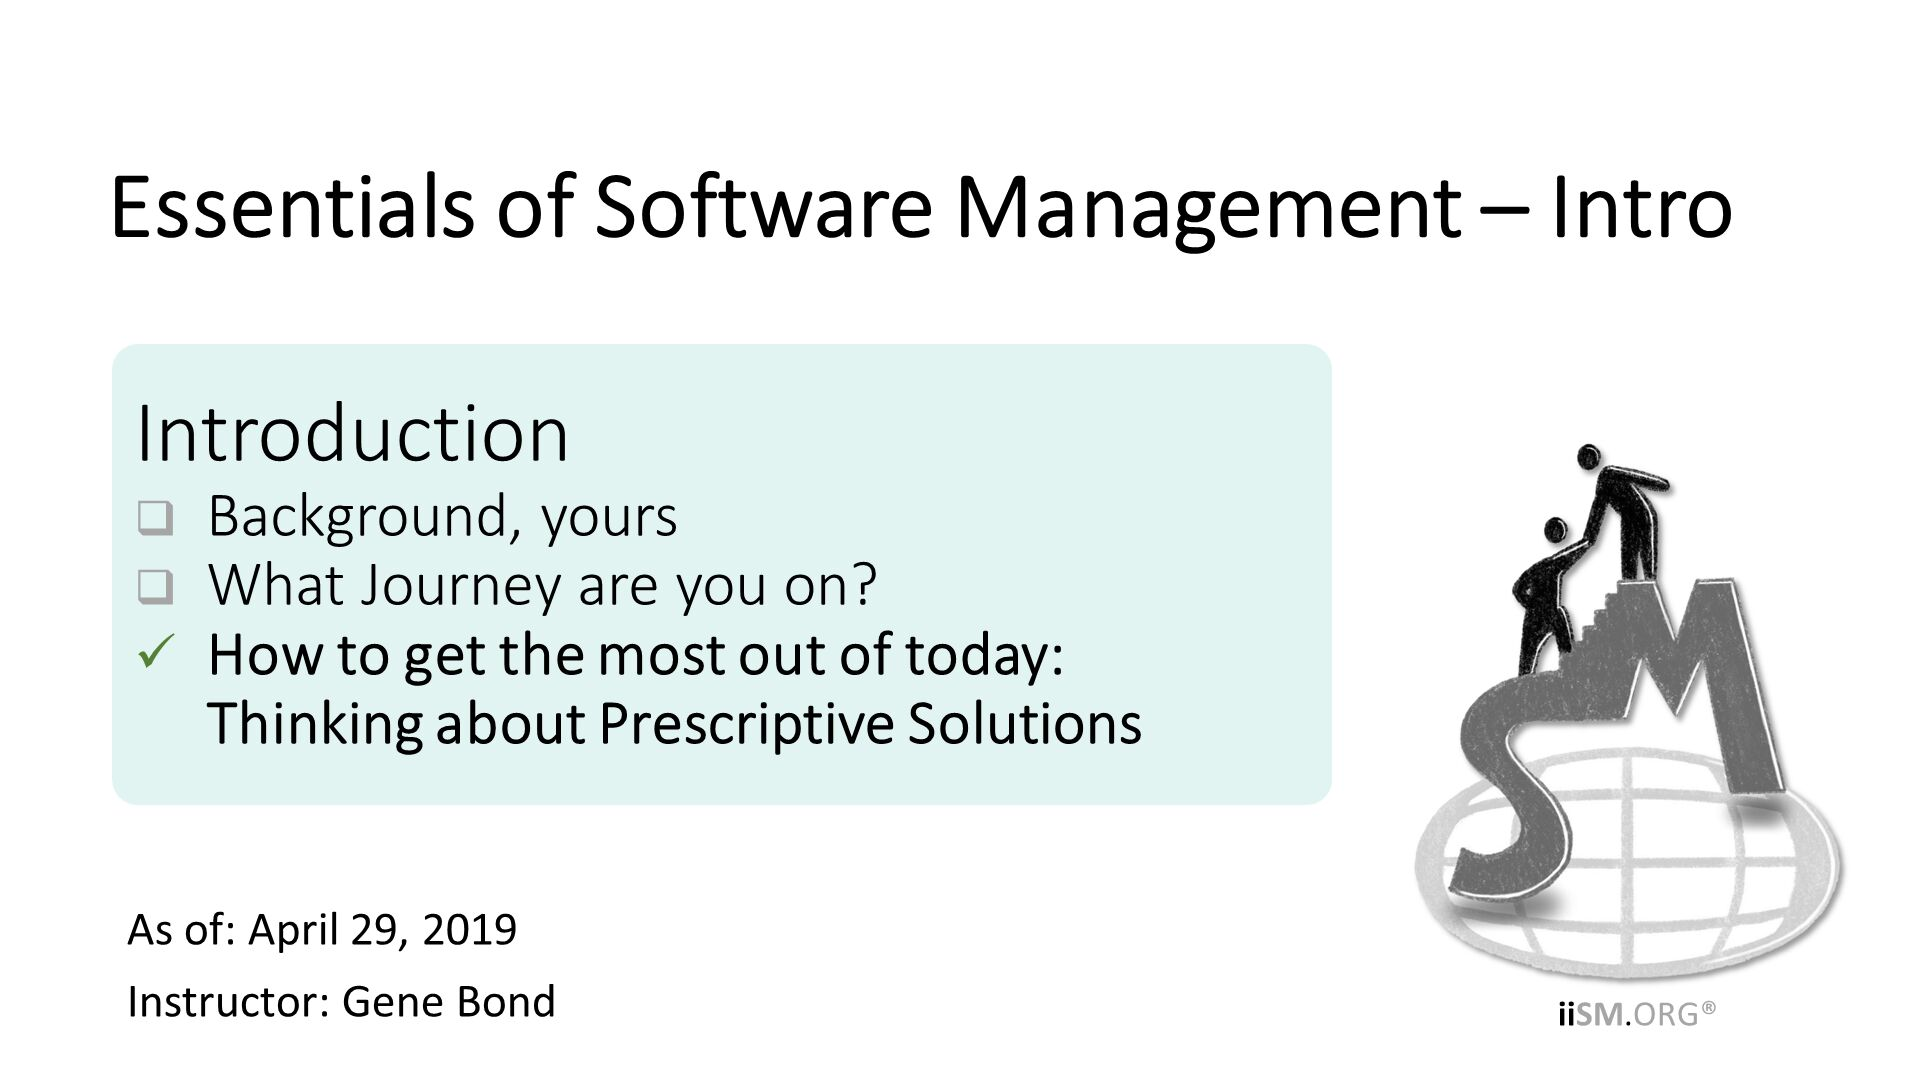 As of: April 29, 2019 Instructor: Gene Bond . Introduction Background, yours What Journey are you on? How to get the most out of today:Thinking about Prescriptive Solutions. Essentials of Software Management – Intro.